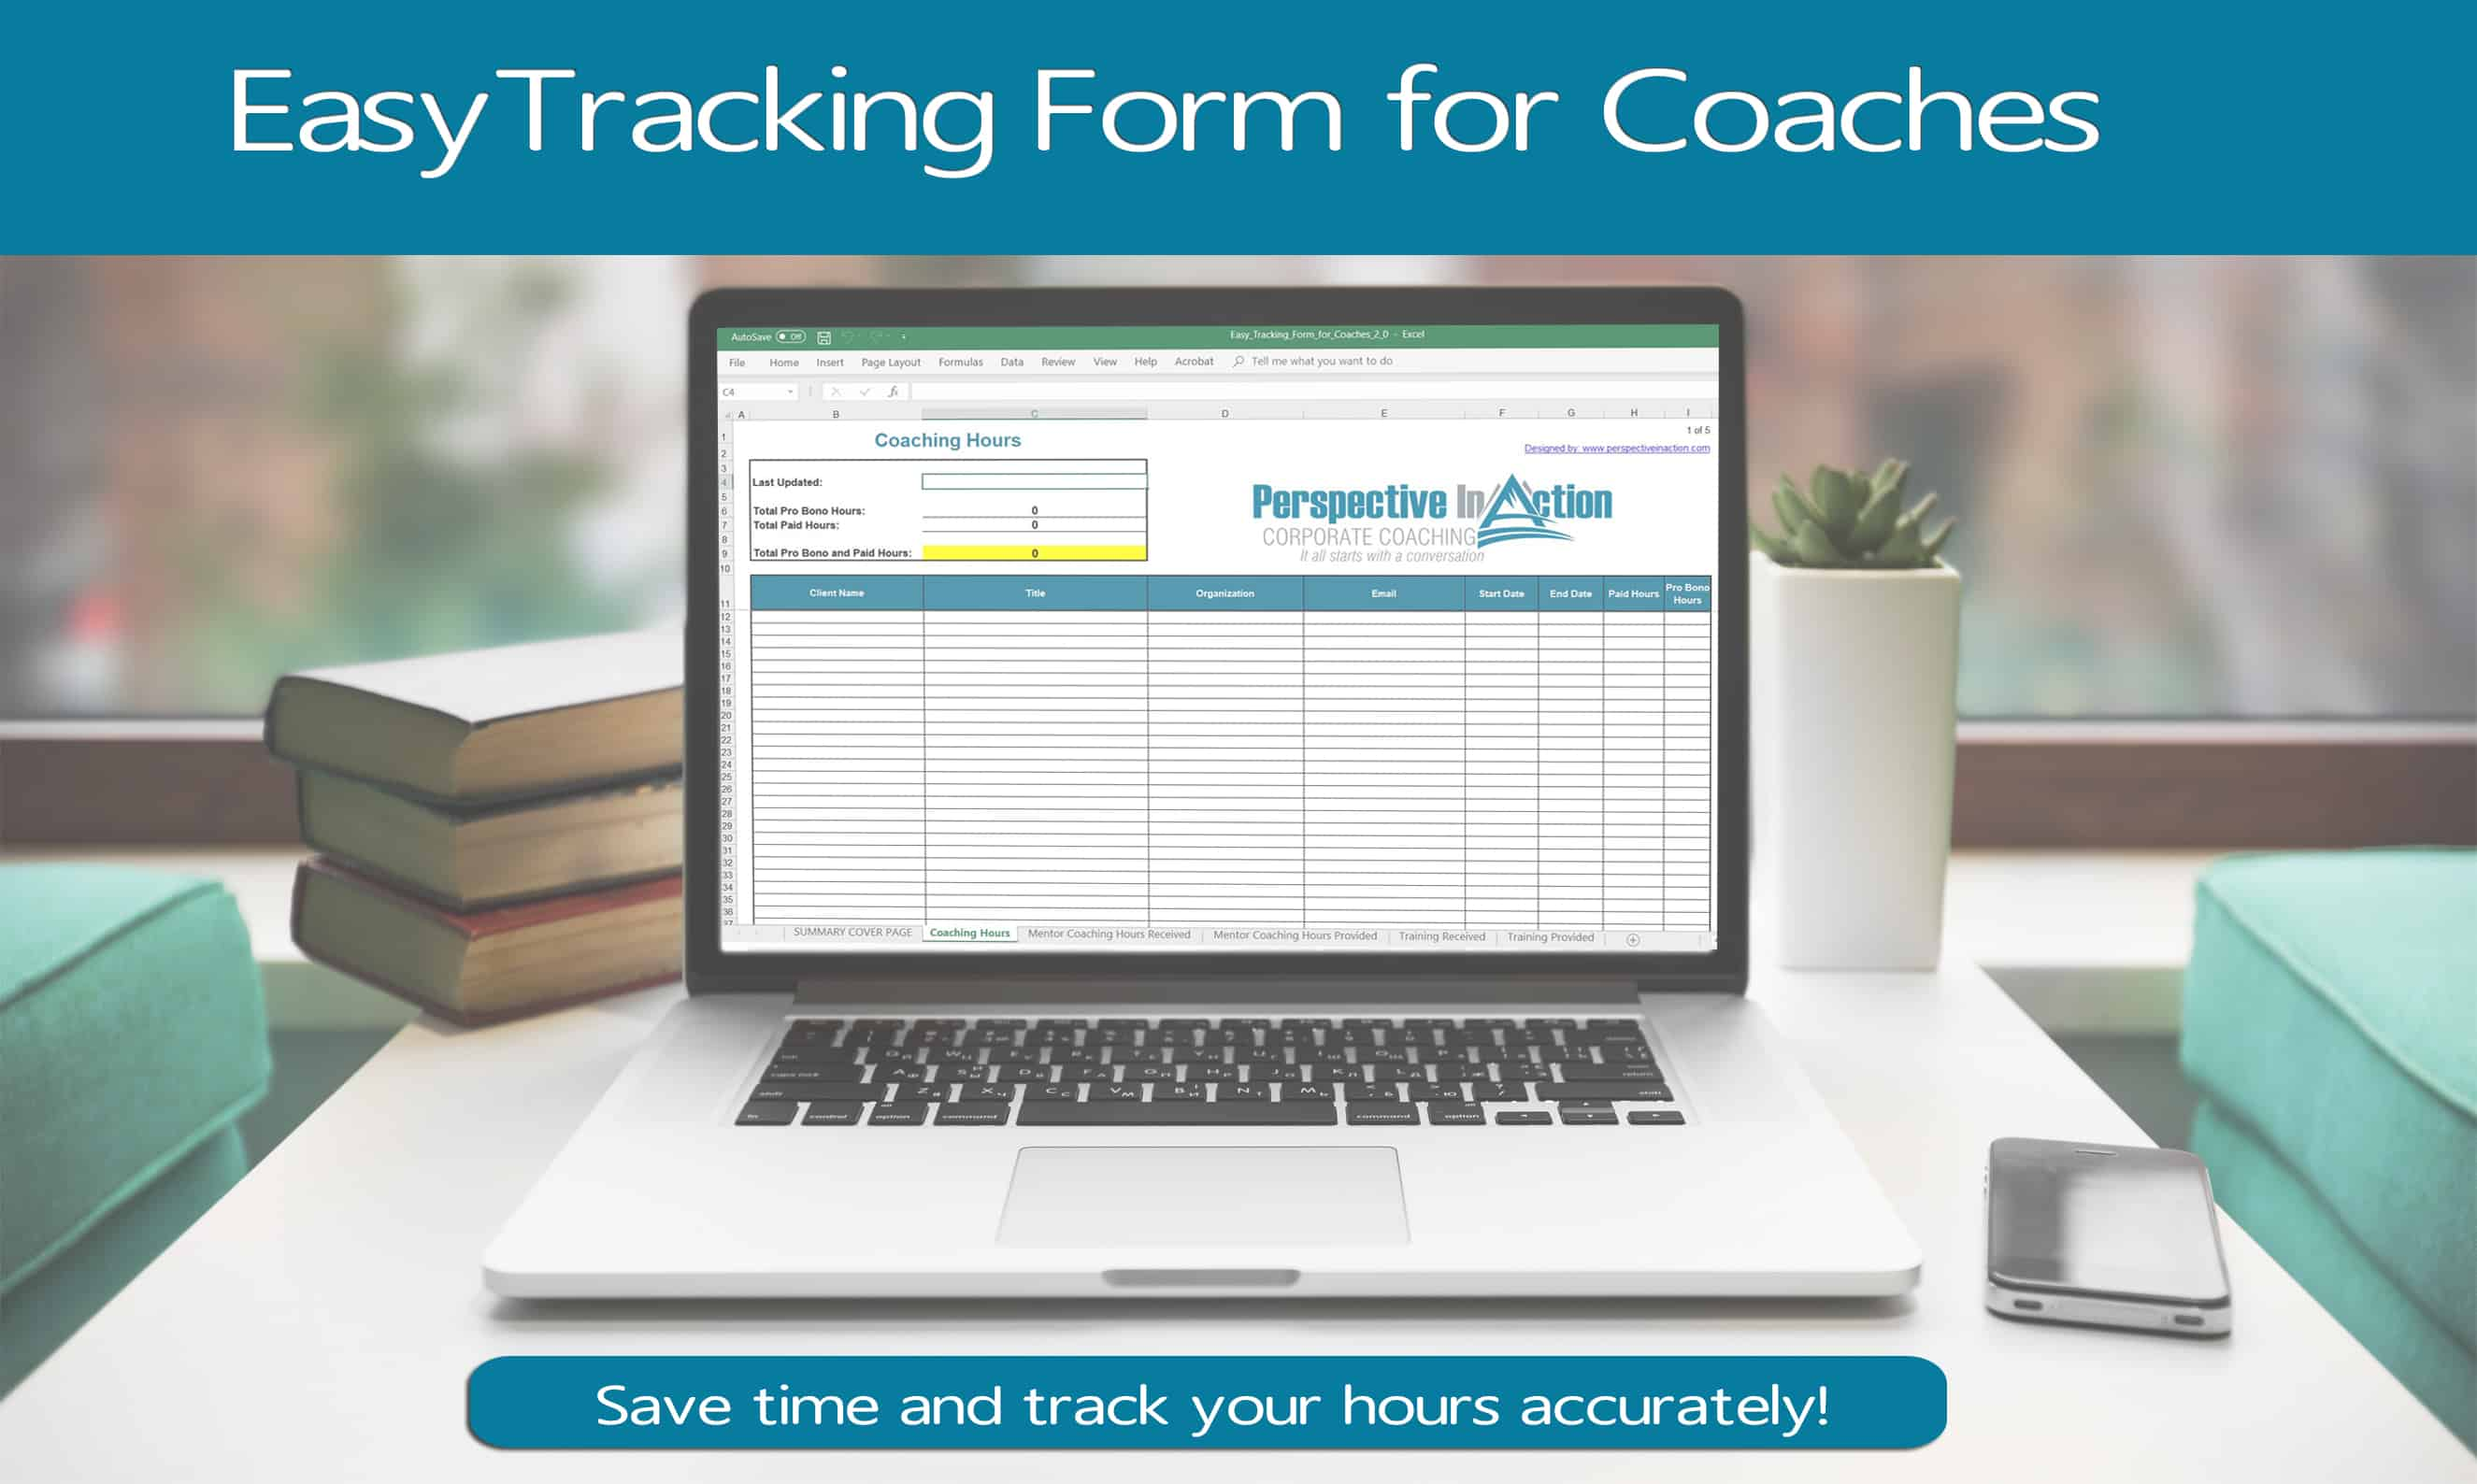 Free Easy Tracking Form for Coaches